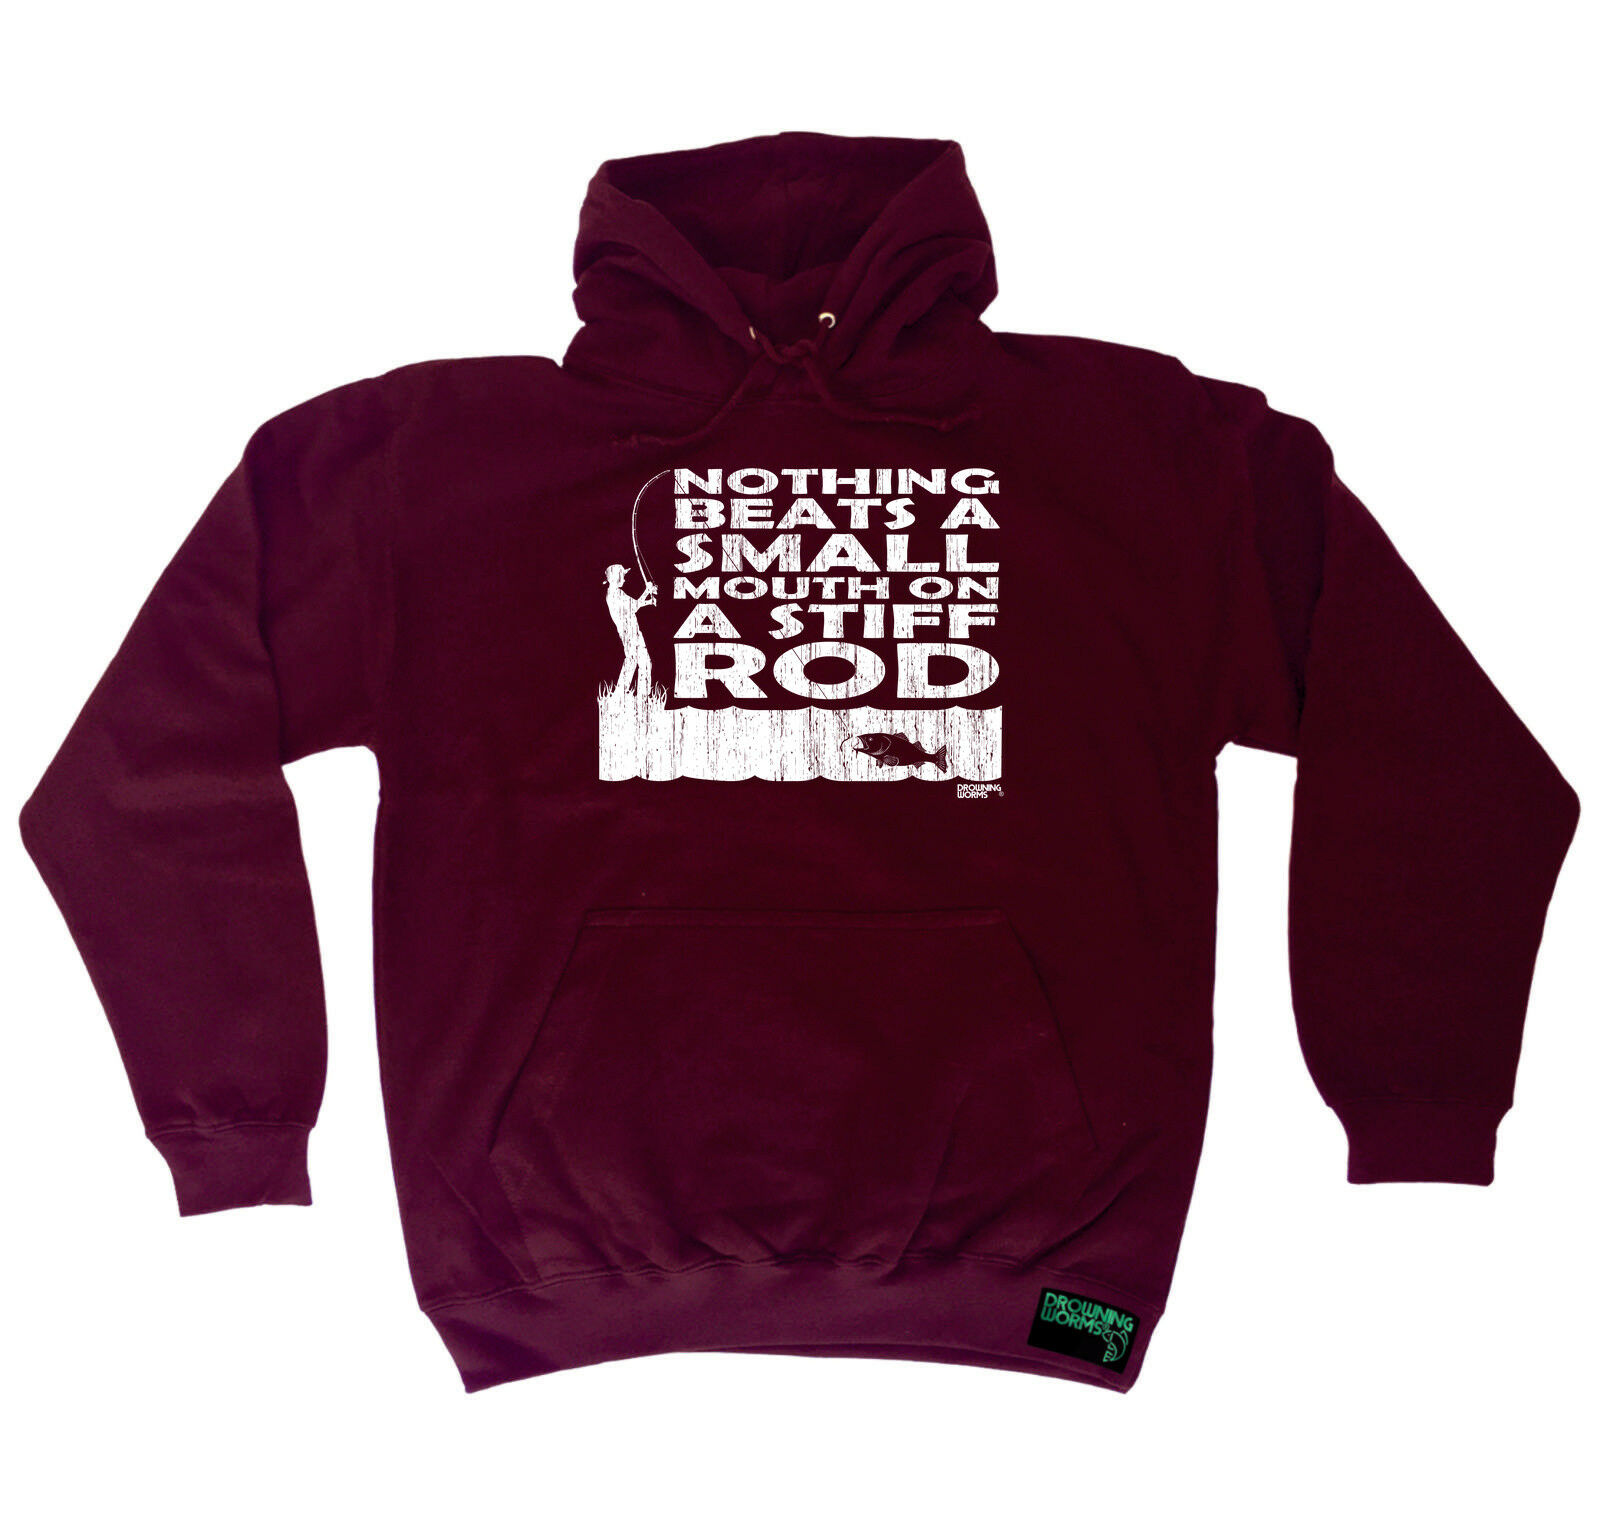 Fishing Hoodie Hoody Funny Novelty hooded Top - Nothing Beats A Small Mouth Stif